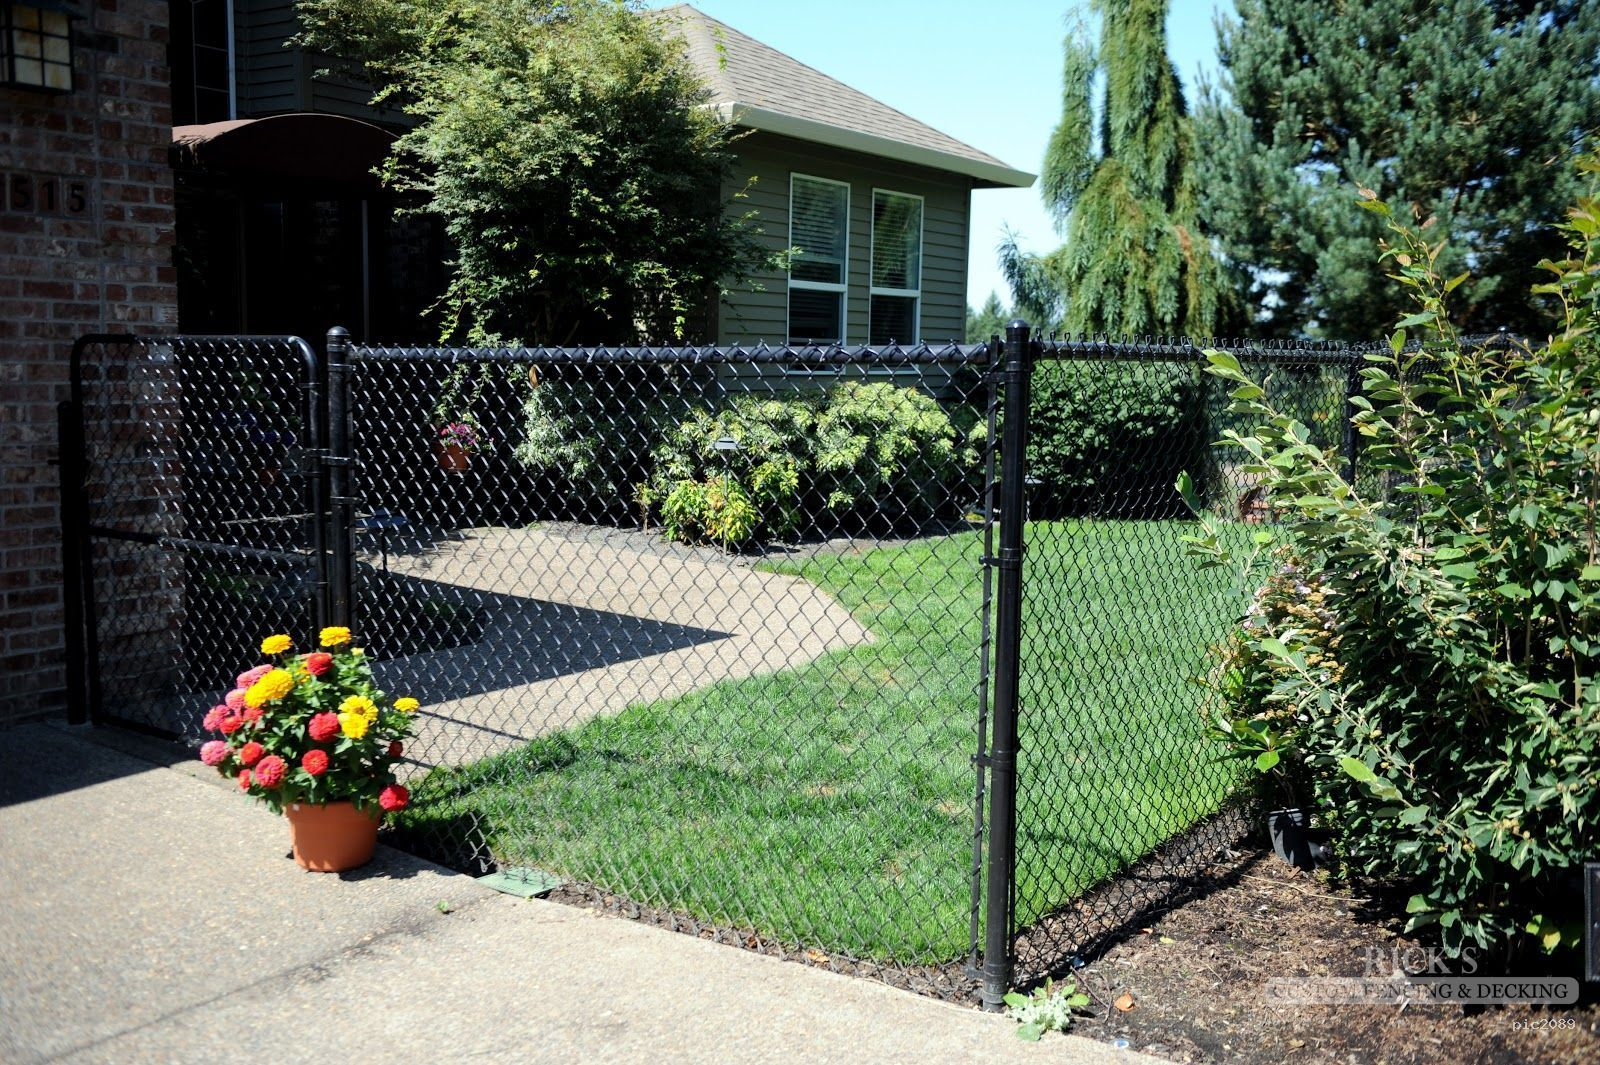 Enhancements In Chain Link Fencing Offer Attractive Fence Designs